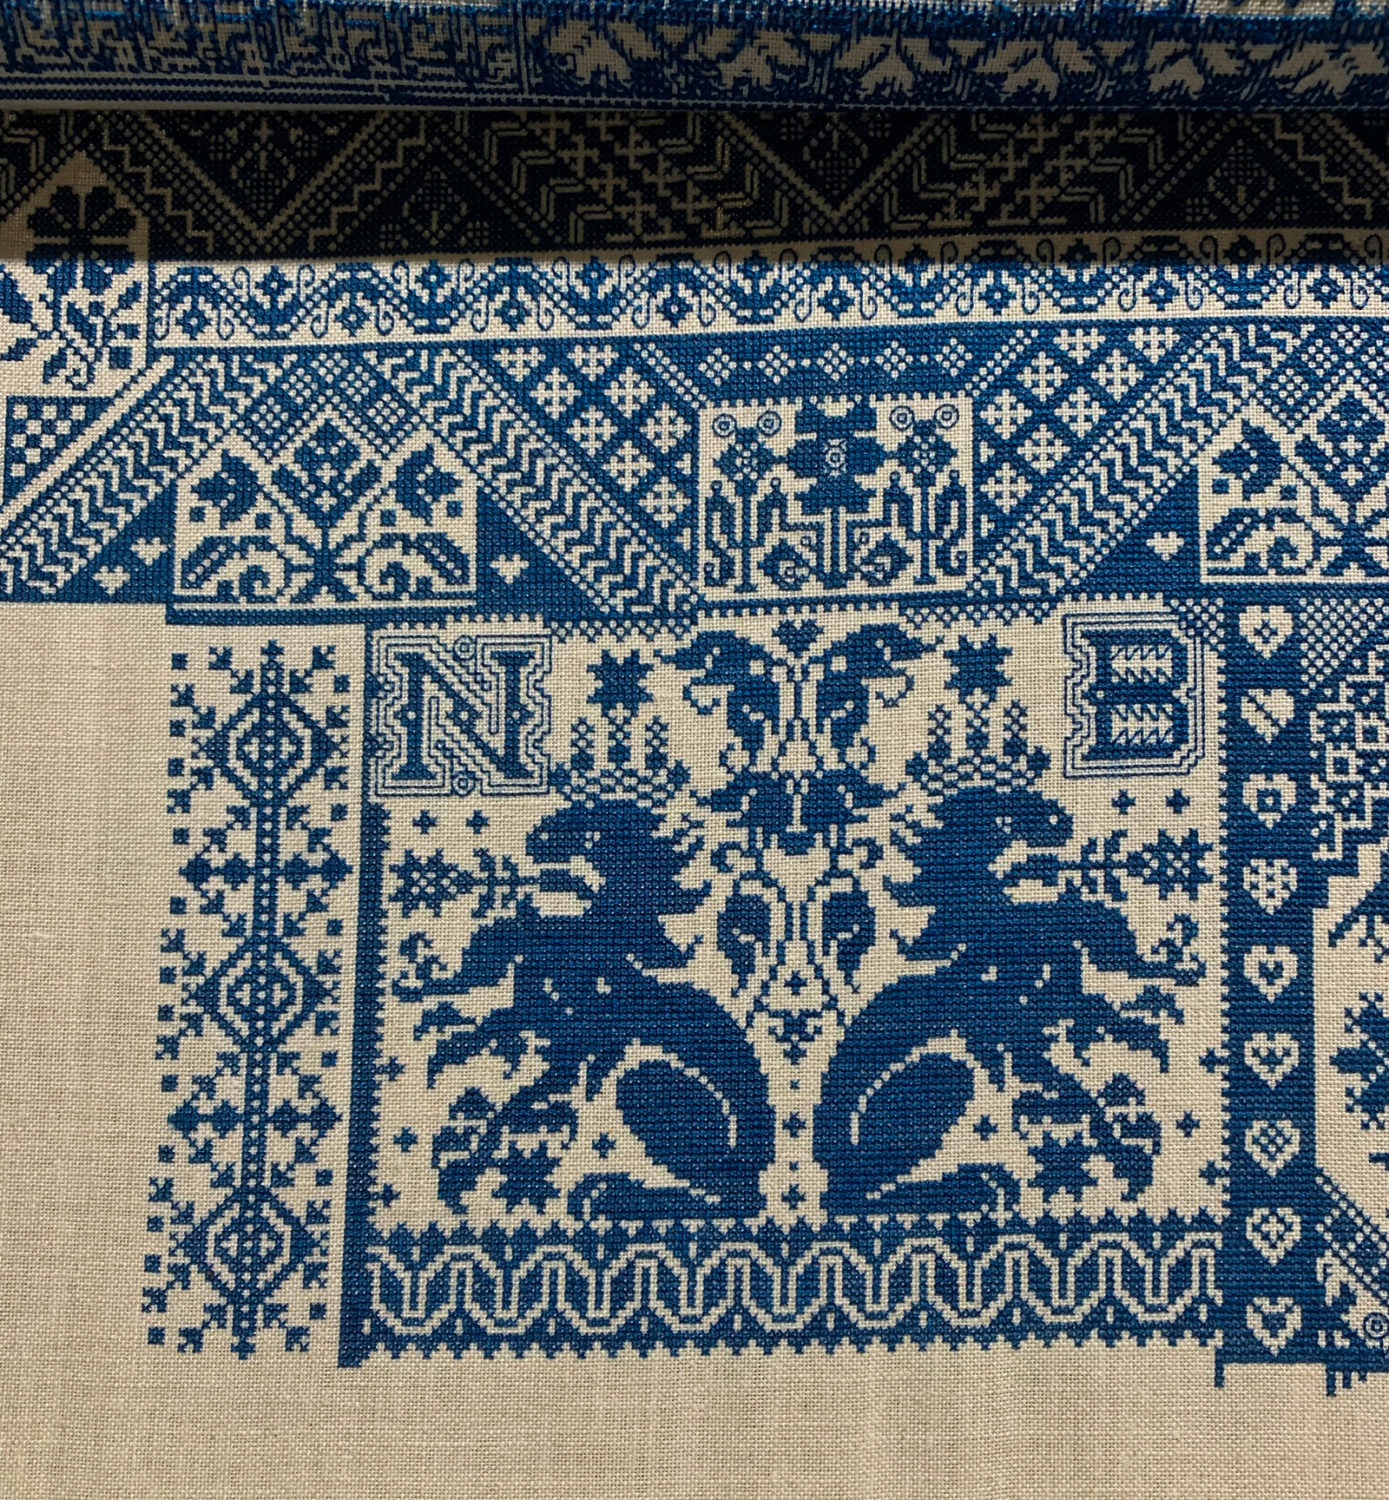 Death By Cross Stitch page 6 3rd March 2019